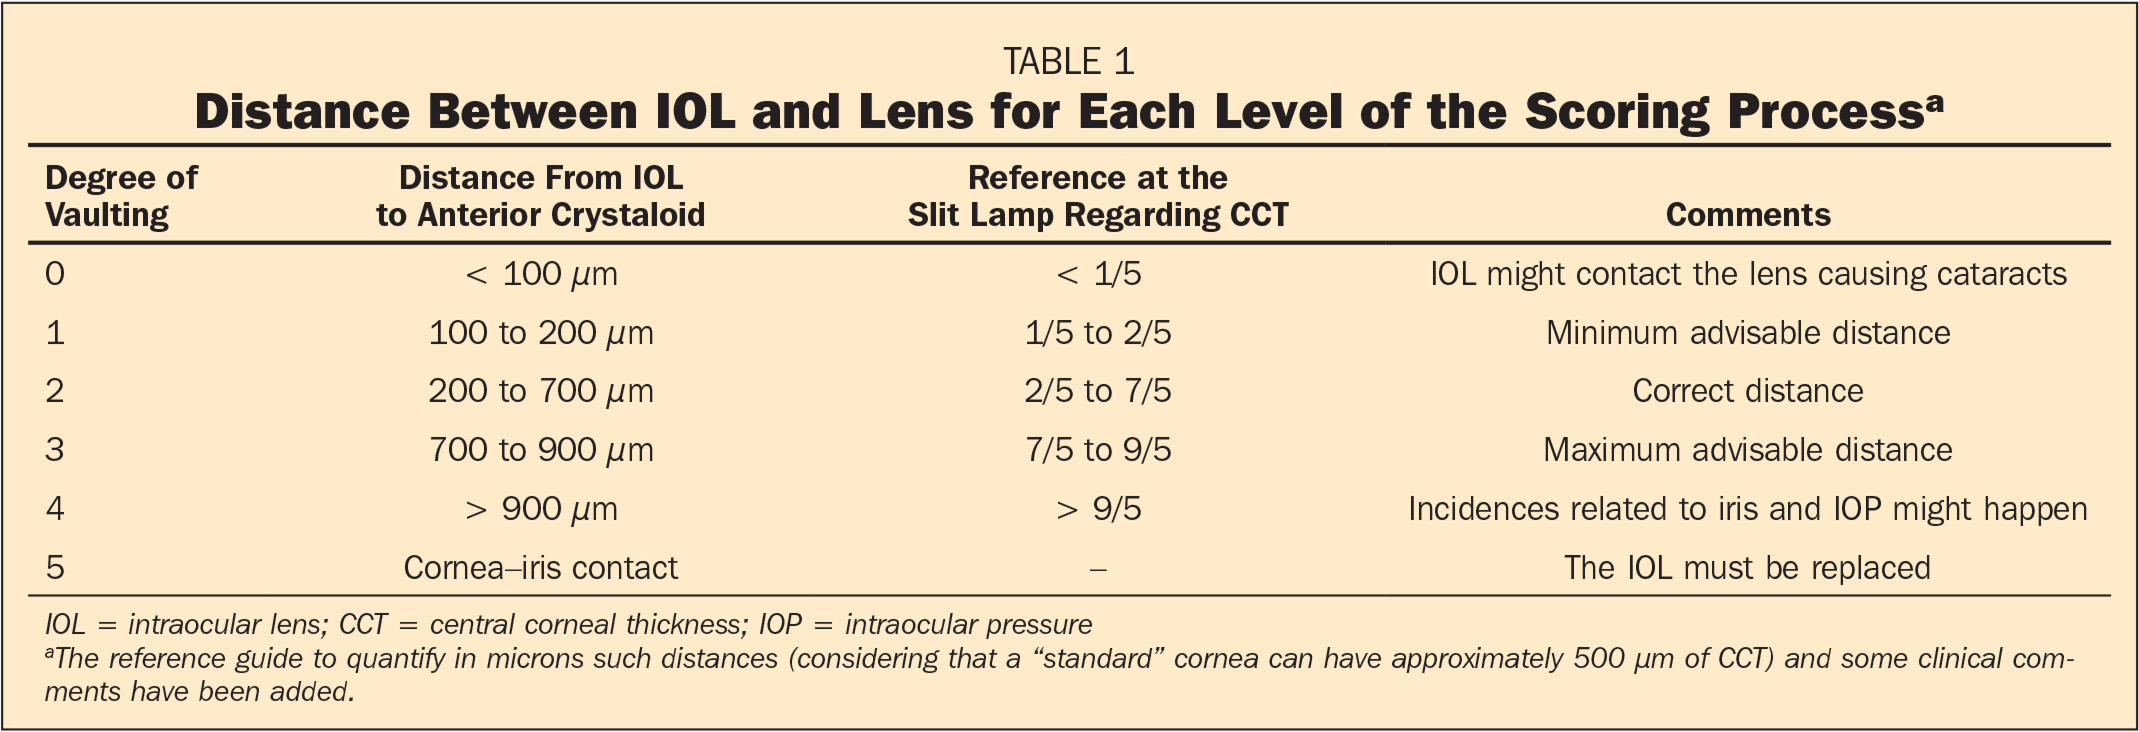 Distance Between IOL and Lens for Each Level of the Scoring Processa